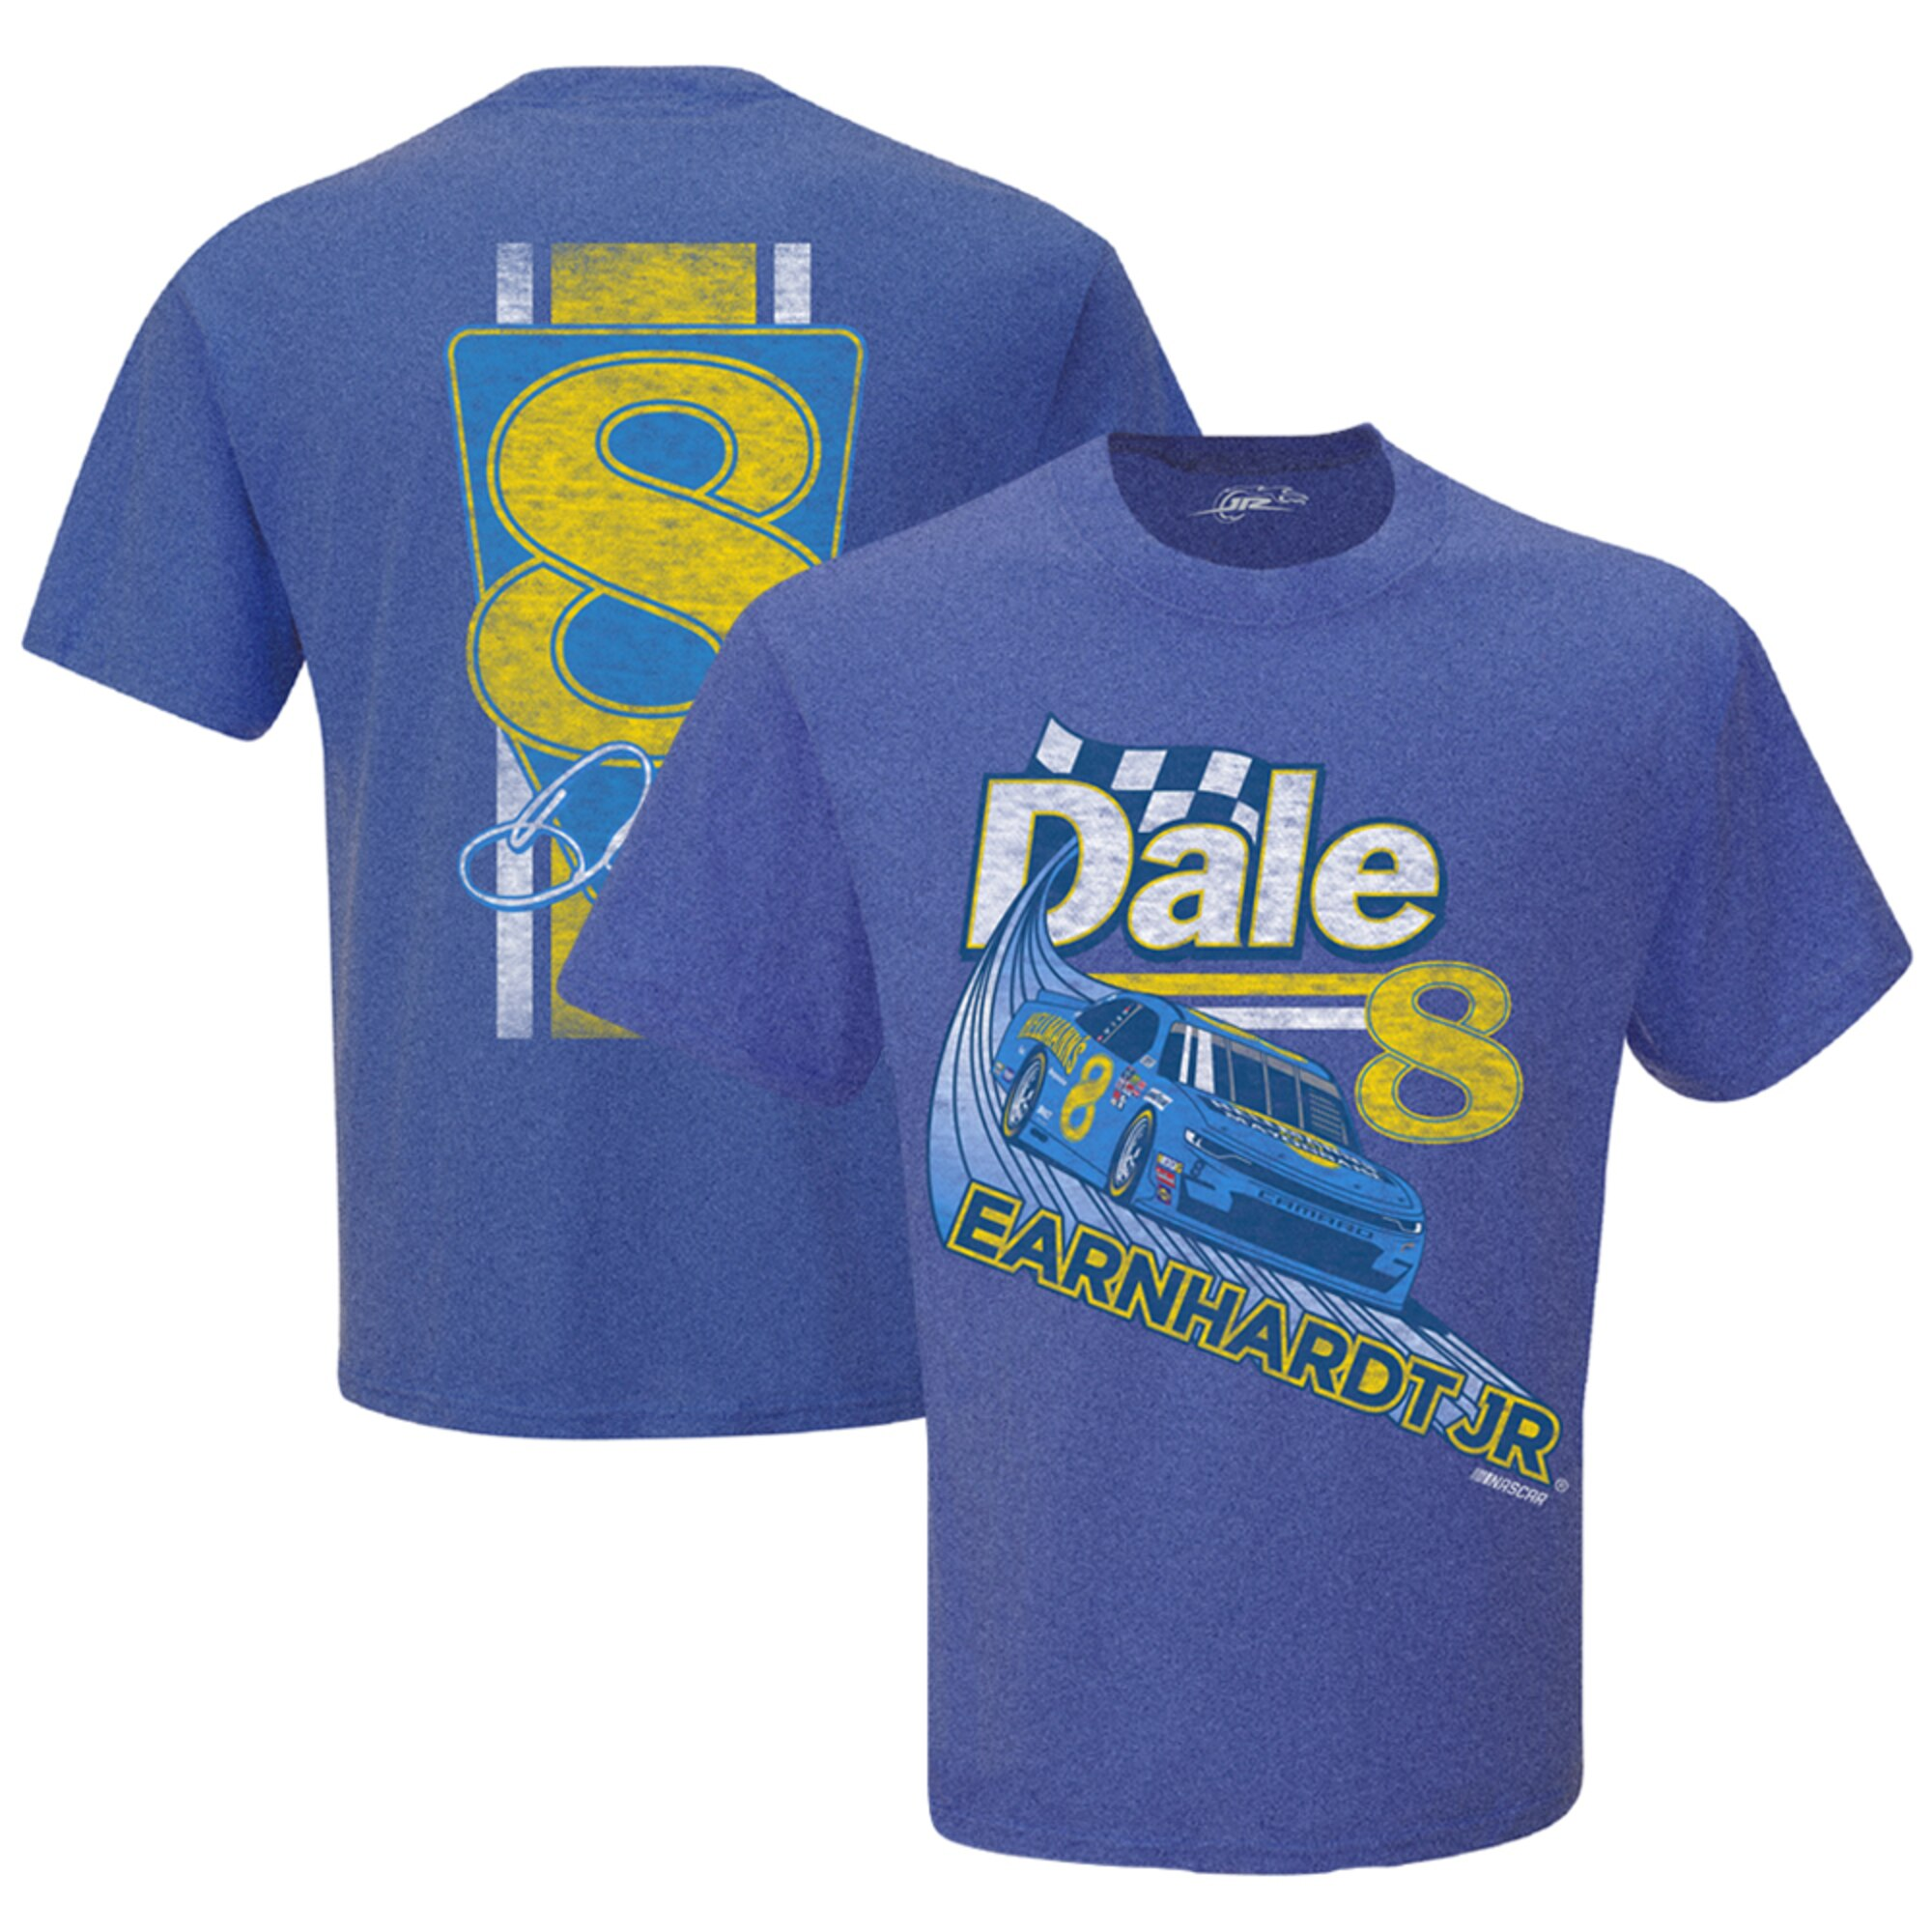 Dale Earnhardt Jr #8 2019 Hellmann's Mayonnaise Darlington Throwback blue t shirt